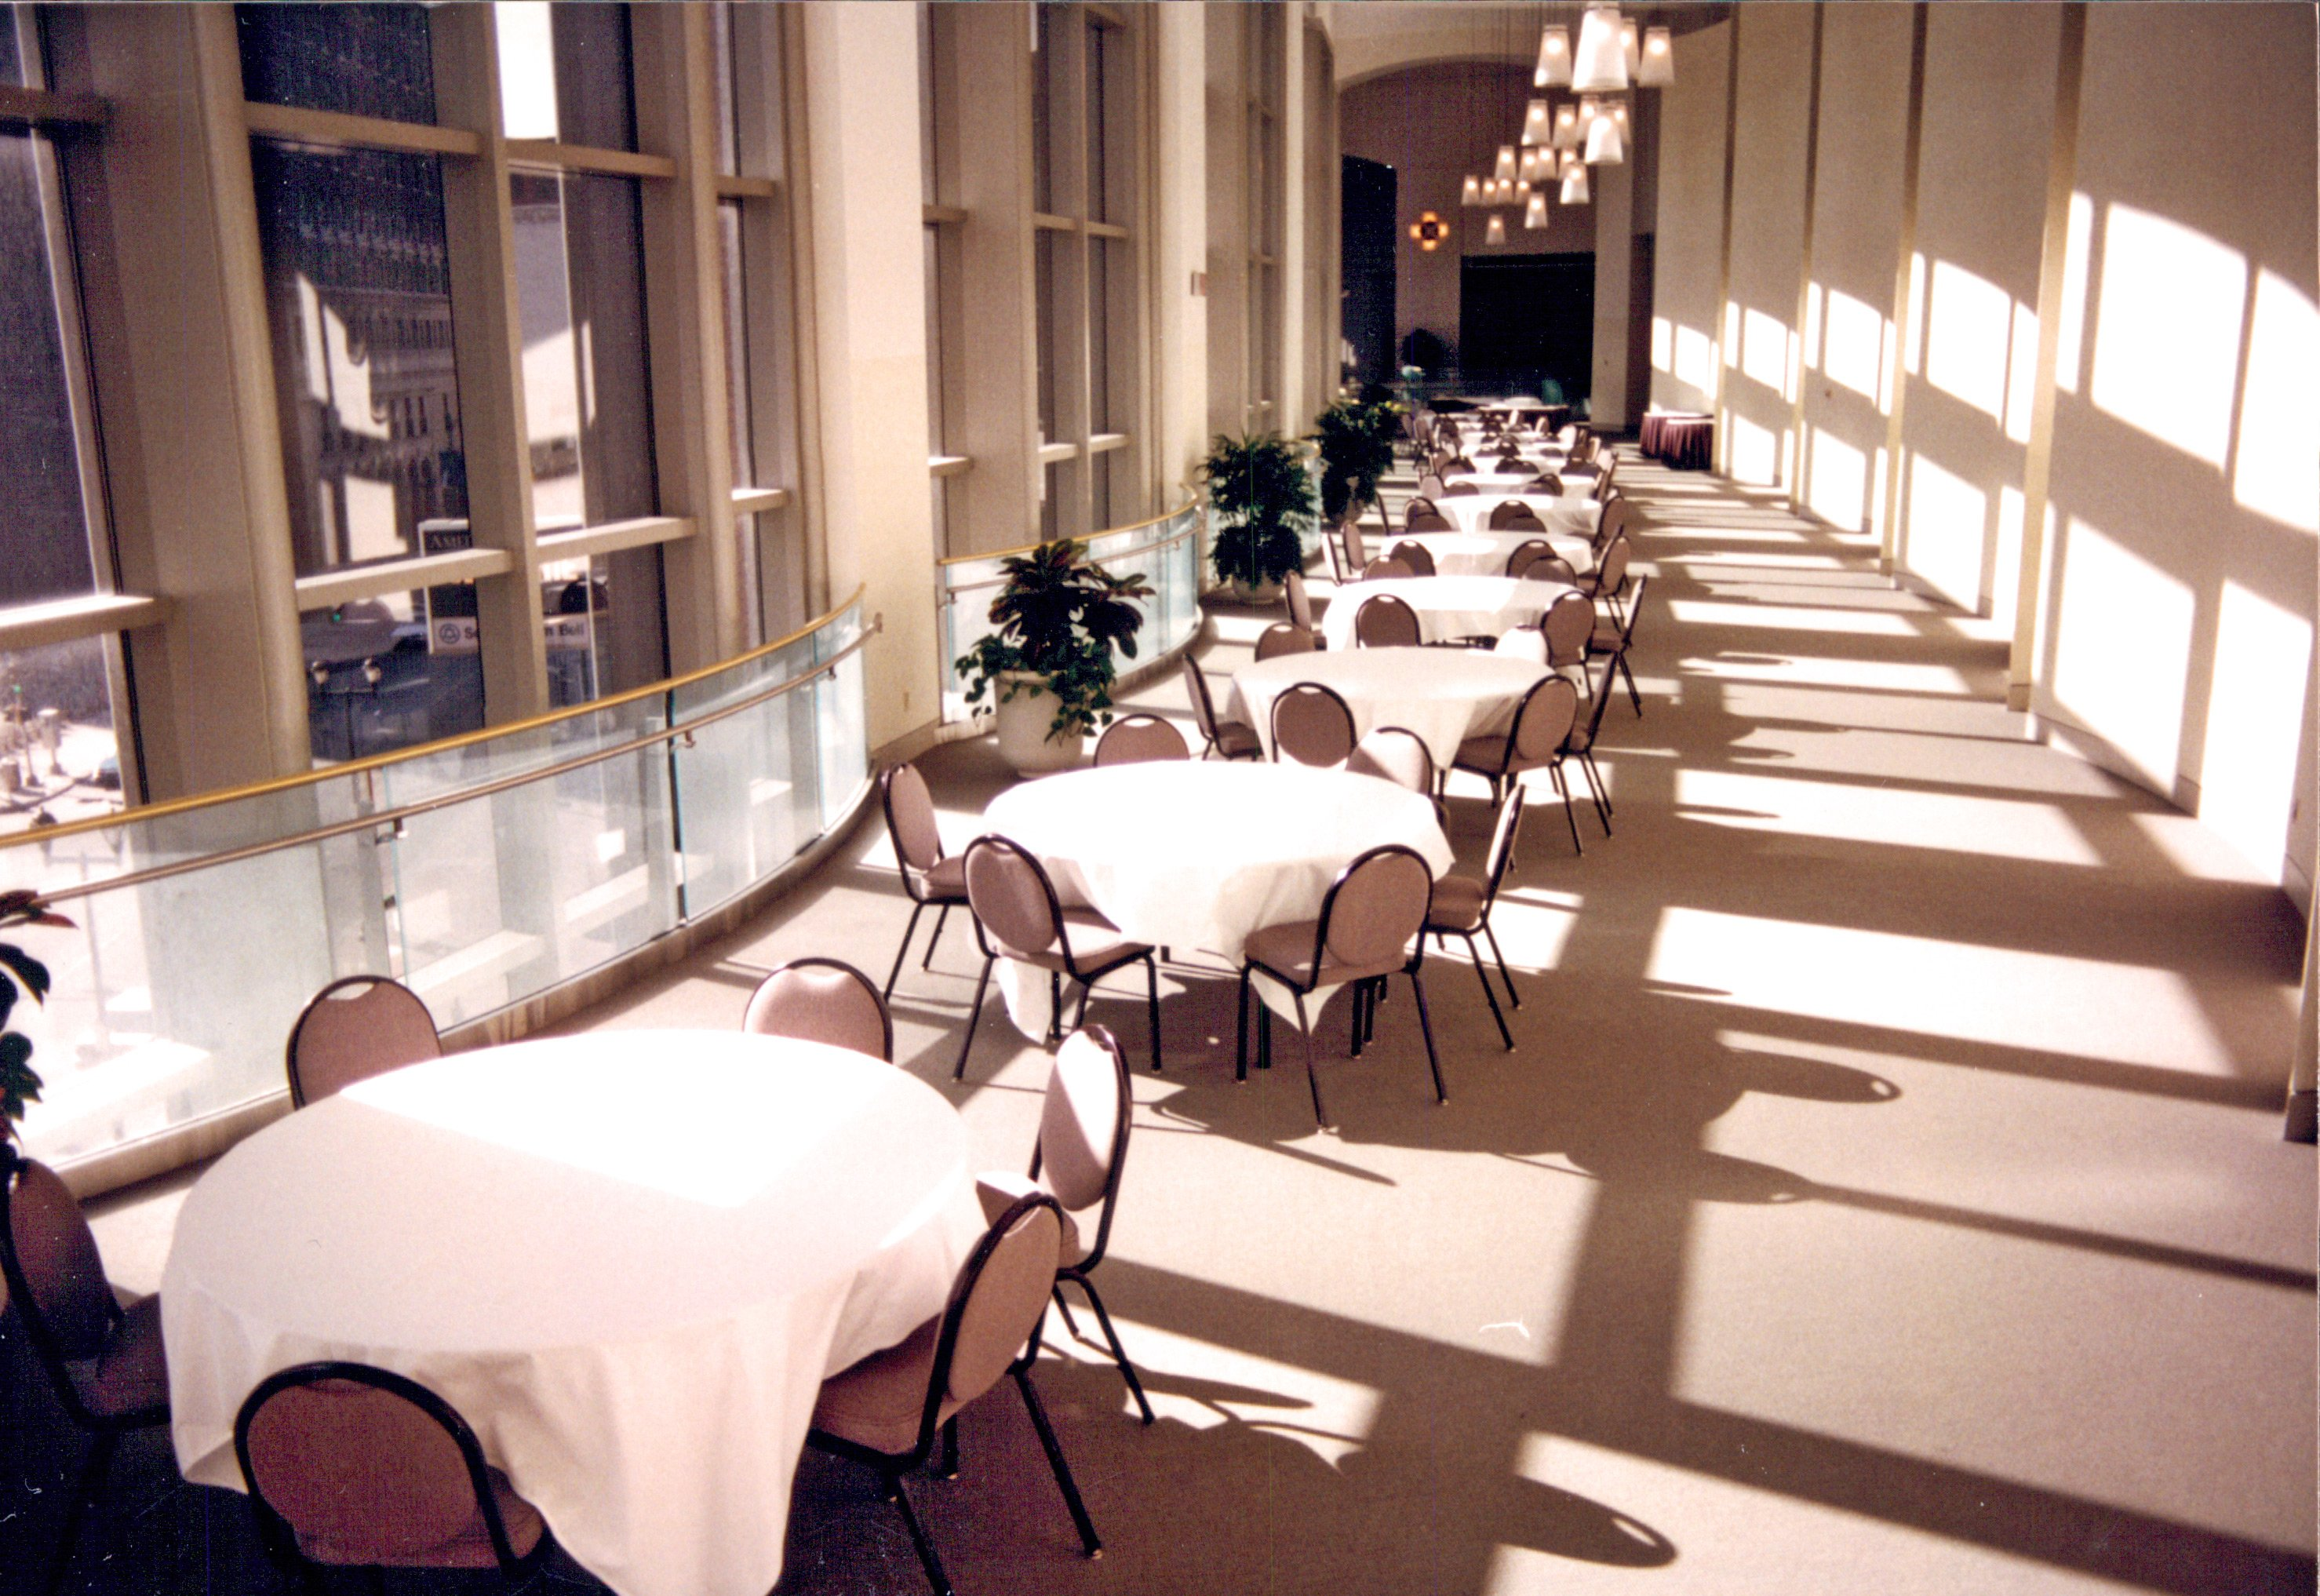 A long row of round banquet tables and chairs lined up next to floor to ceiling windows in a hallway